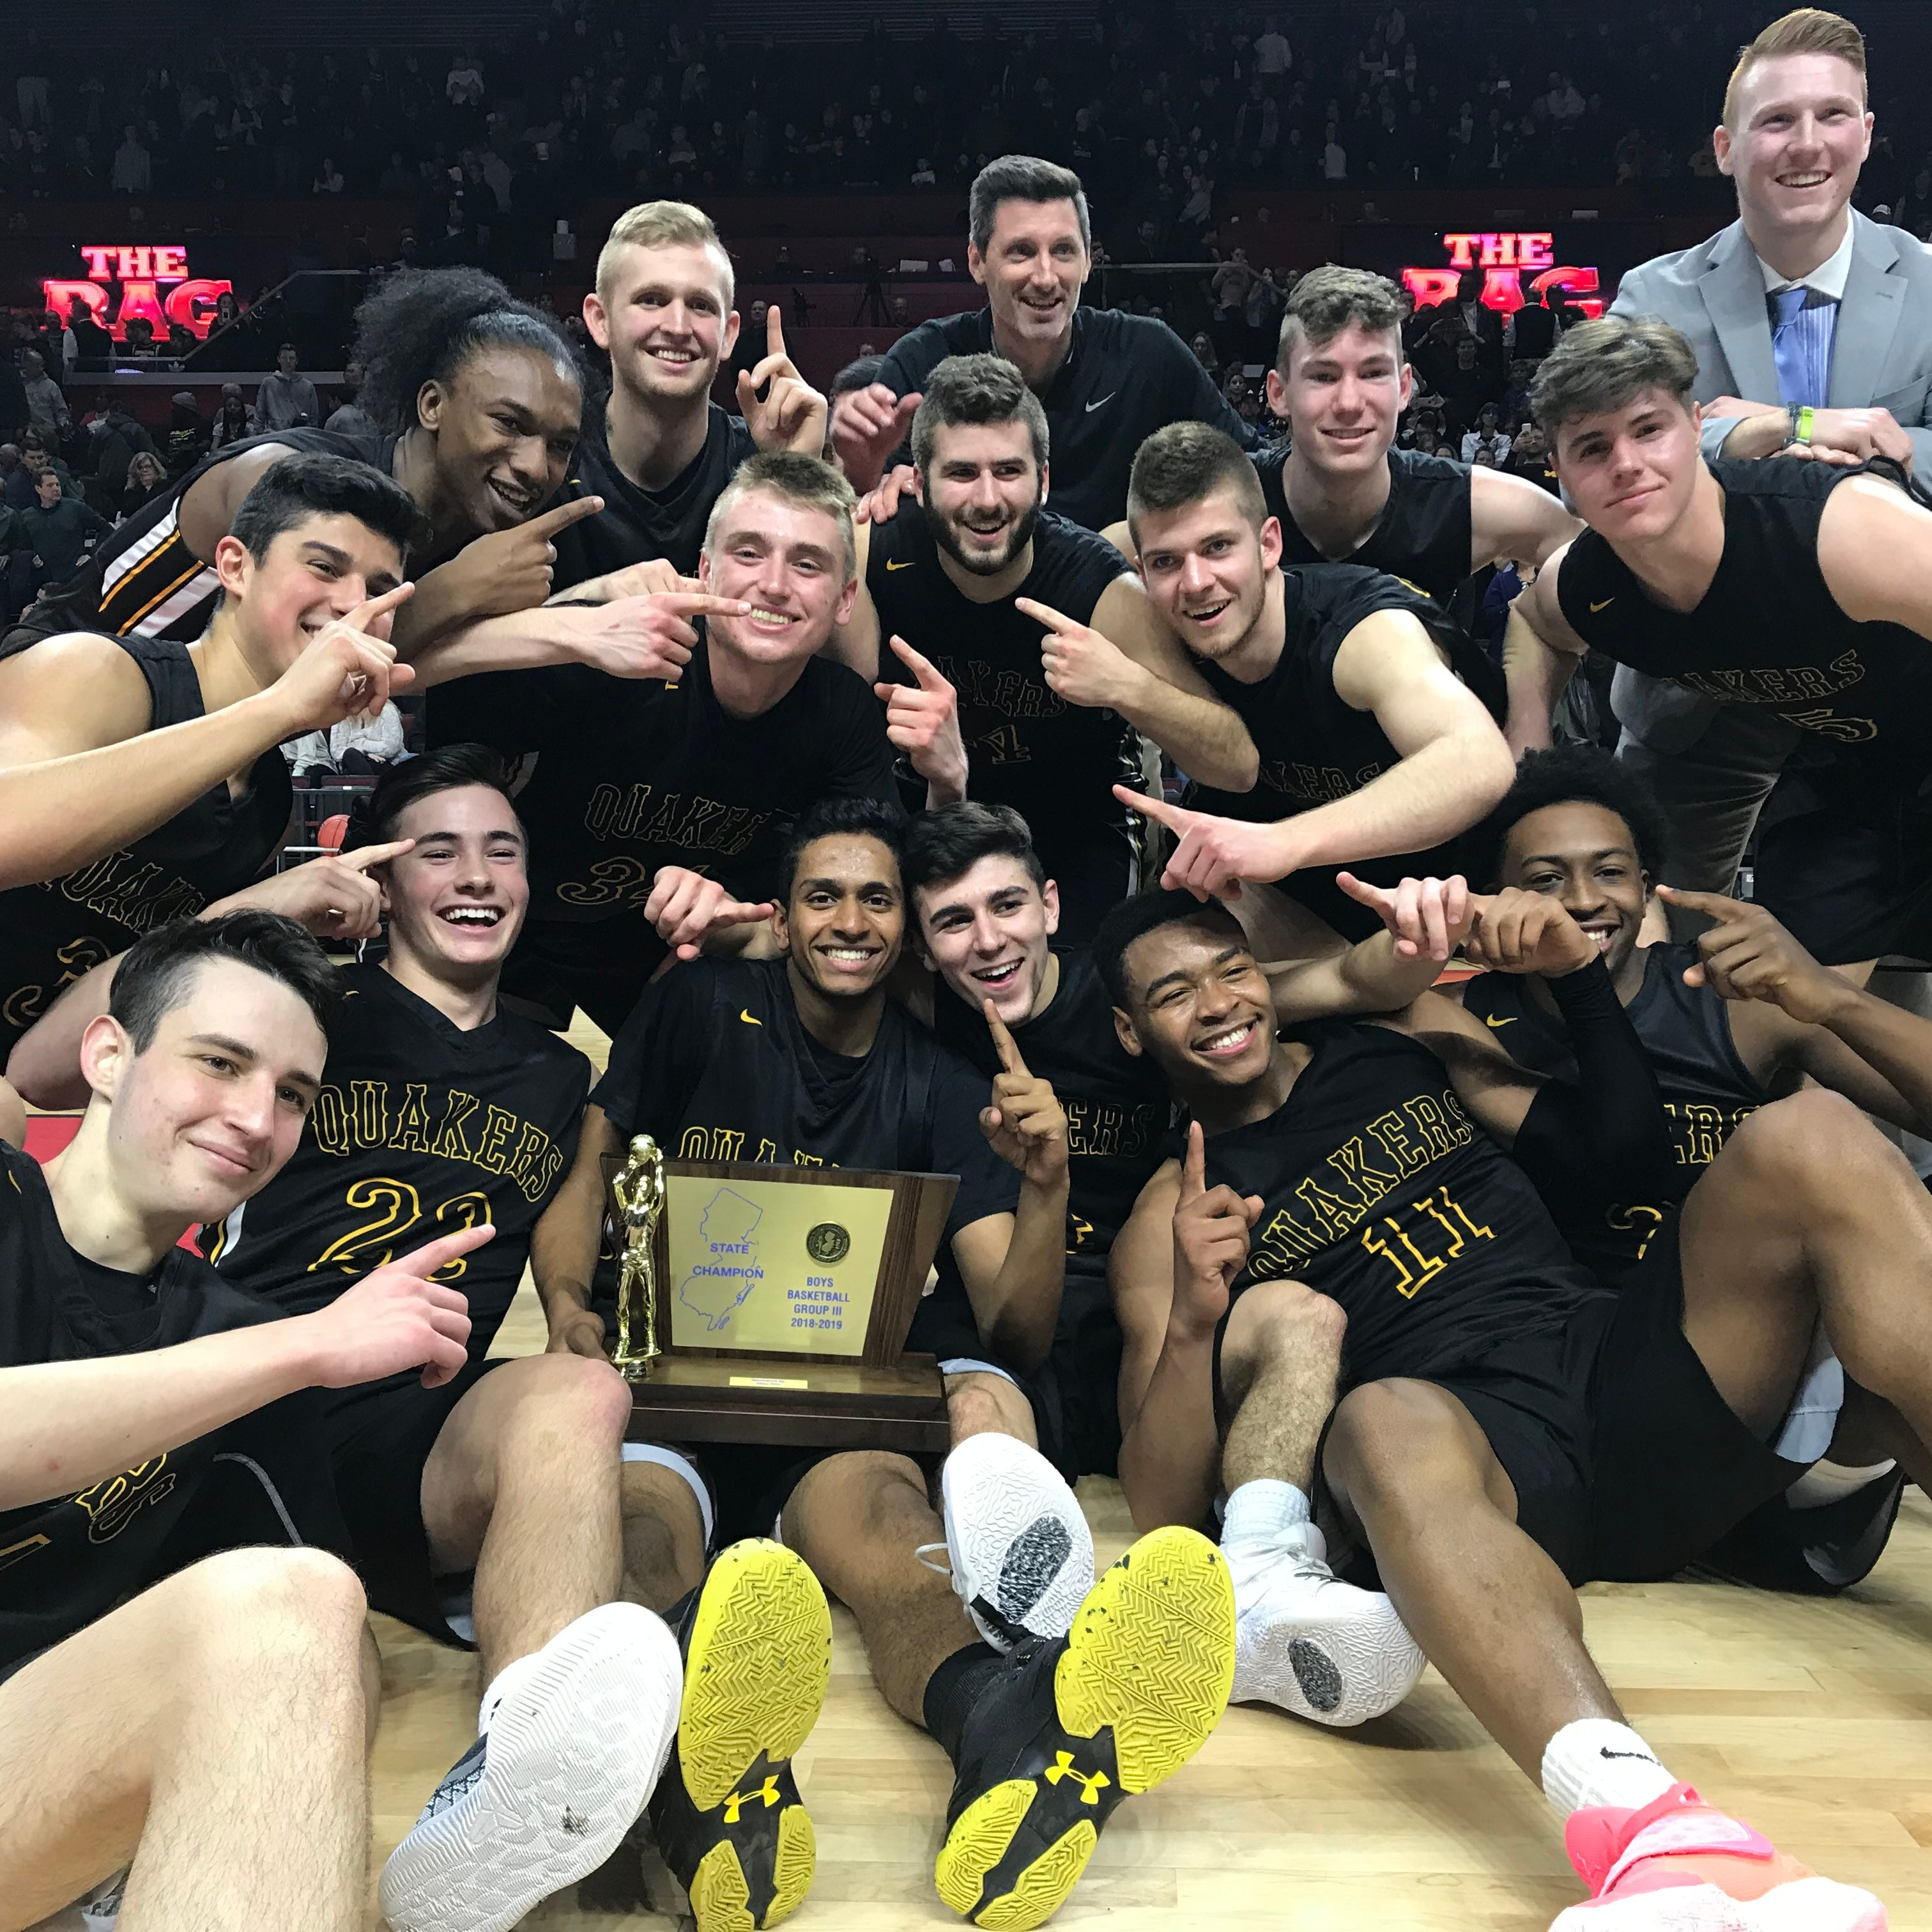 Basketball: Moorestown captures first state championship in sixty years